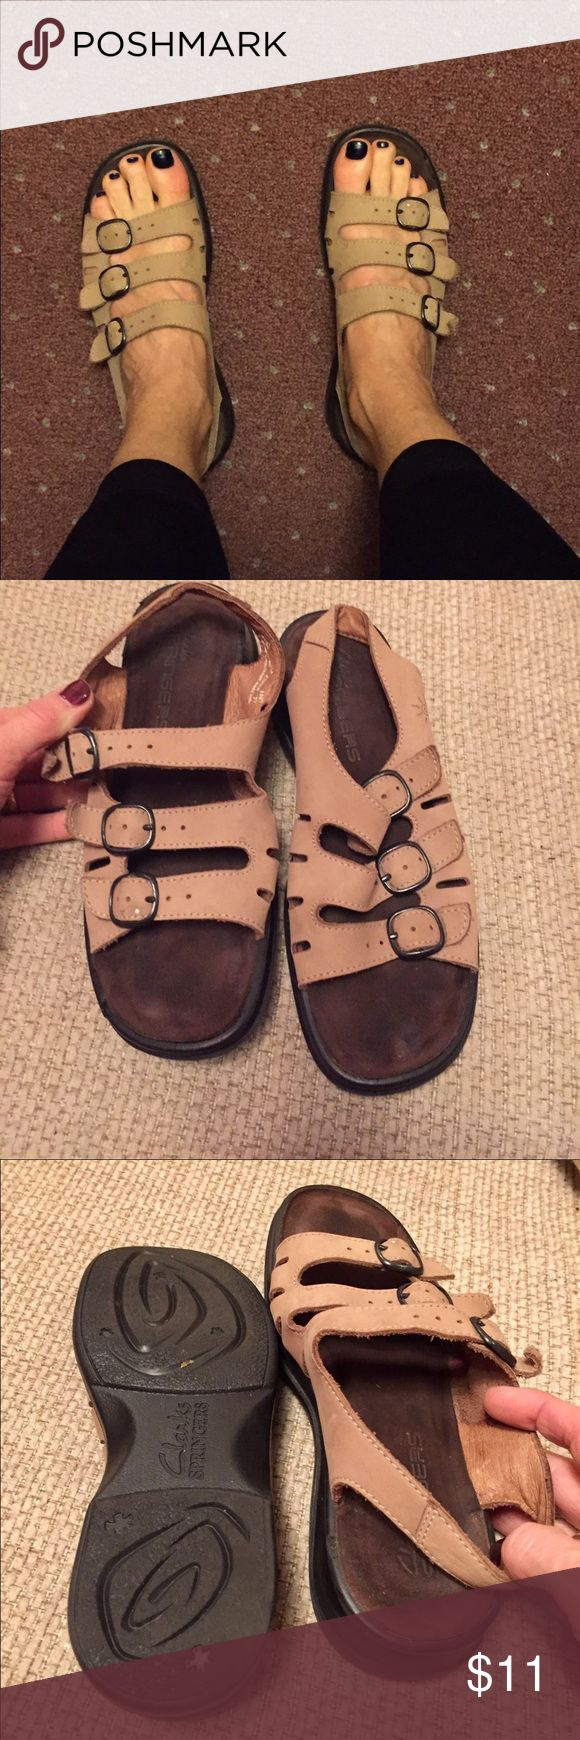 Women's Tan Sandals  Clarks Women's Tan Sandals Clarks, very comfortable,  a tiny bit of a lift, only worn in the house a few times I wanted them to work but they are just too small for me, size 6. Clarks Shoes Sandals